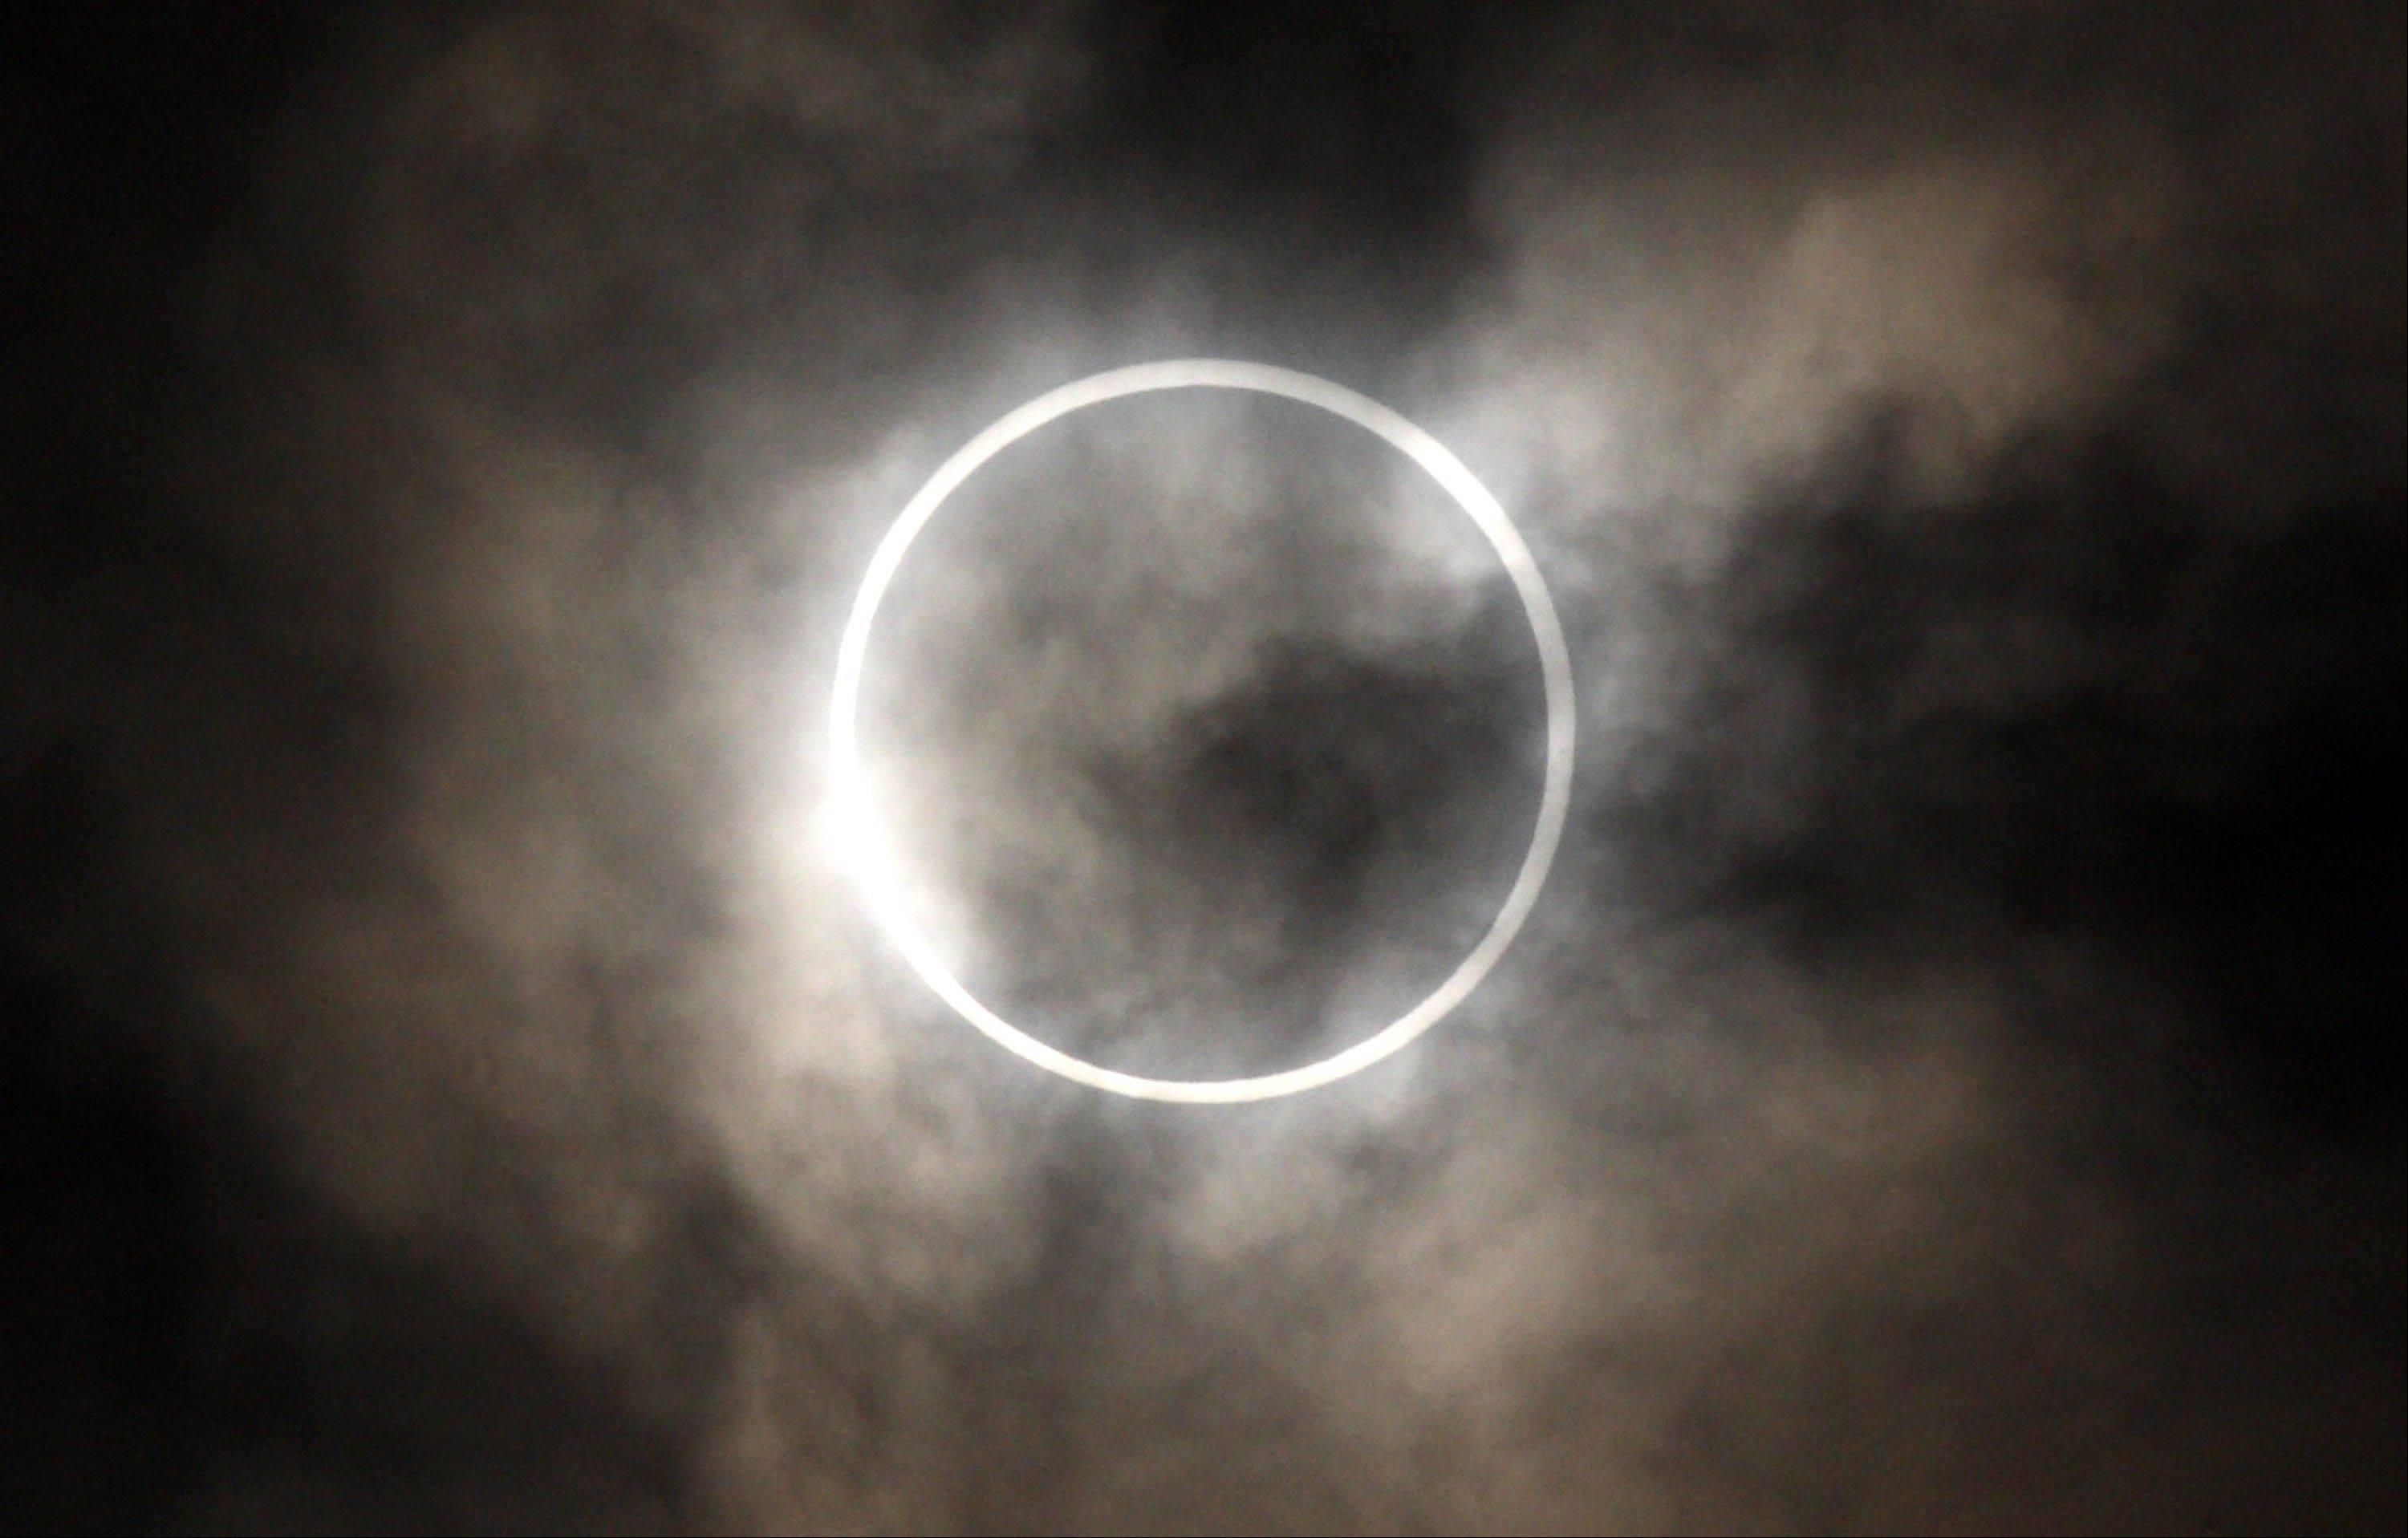 The sun is obscured by the moon during an annular solar eclipse in Tokyo, Japan, on Monday, May 21, 2012. An annular solar eclipse was observed in Japan today.